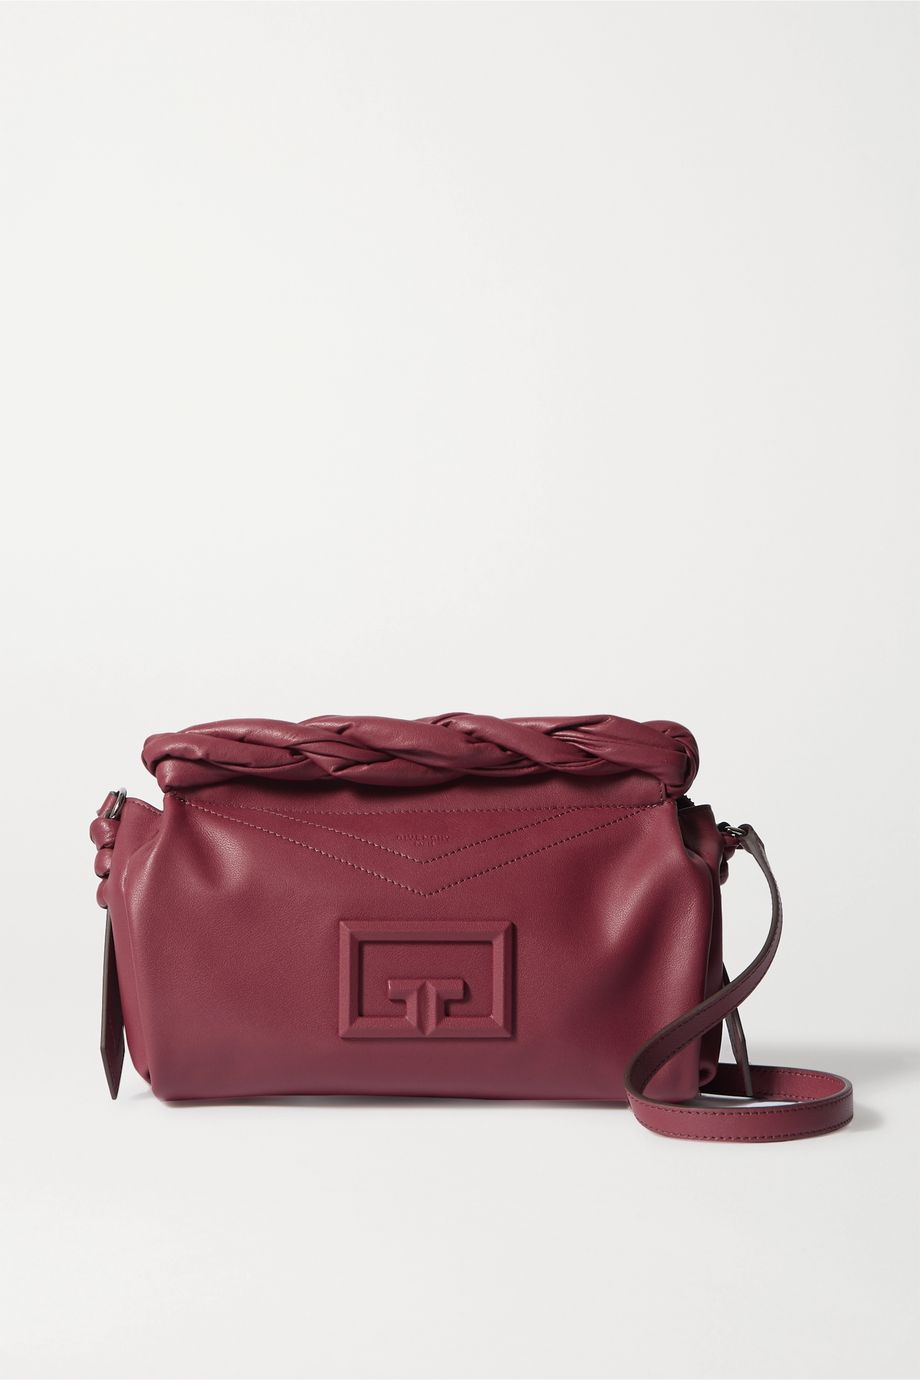 Givenchy ID93 small leather shoulder bag